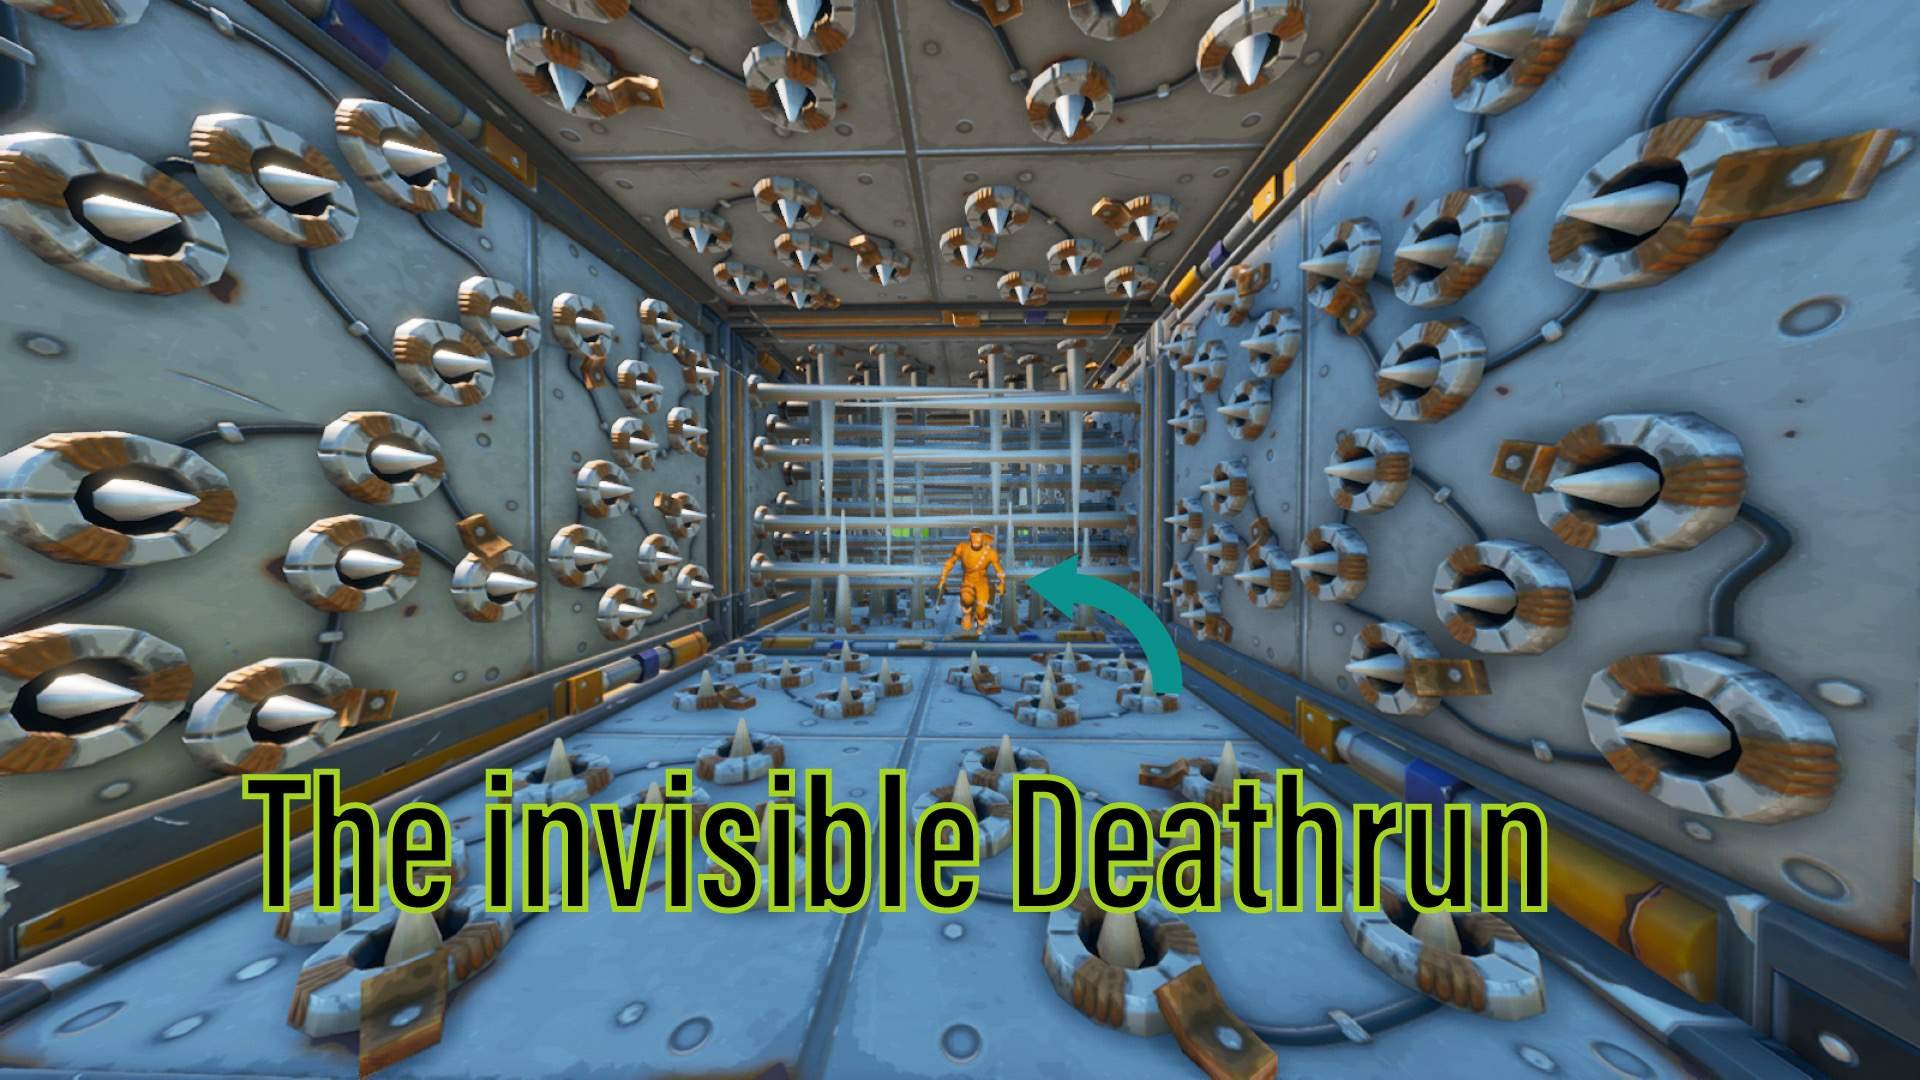 THE INVINCIBLE DEATHRUN